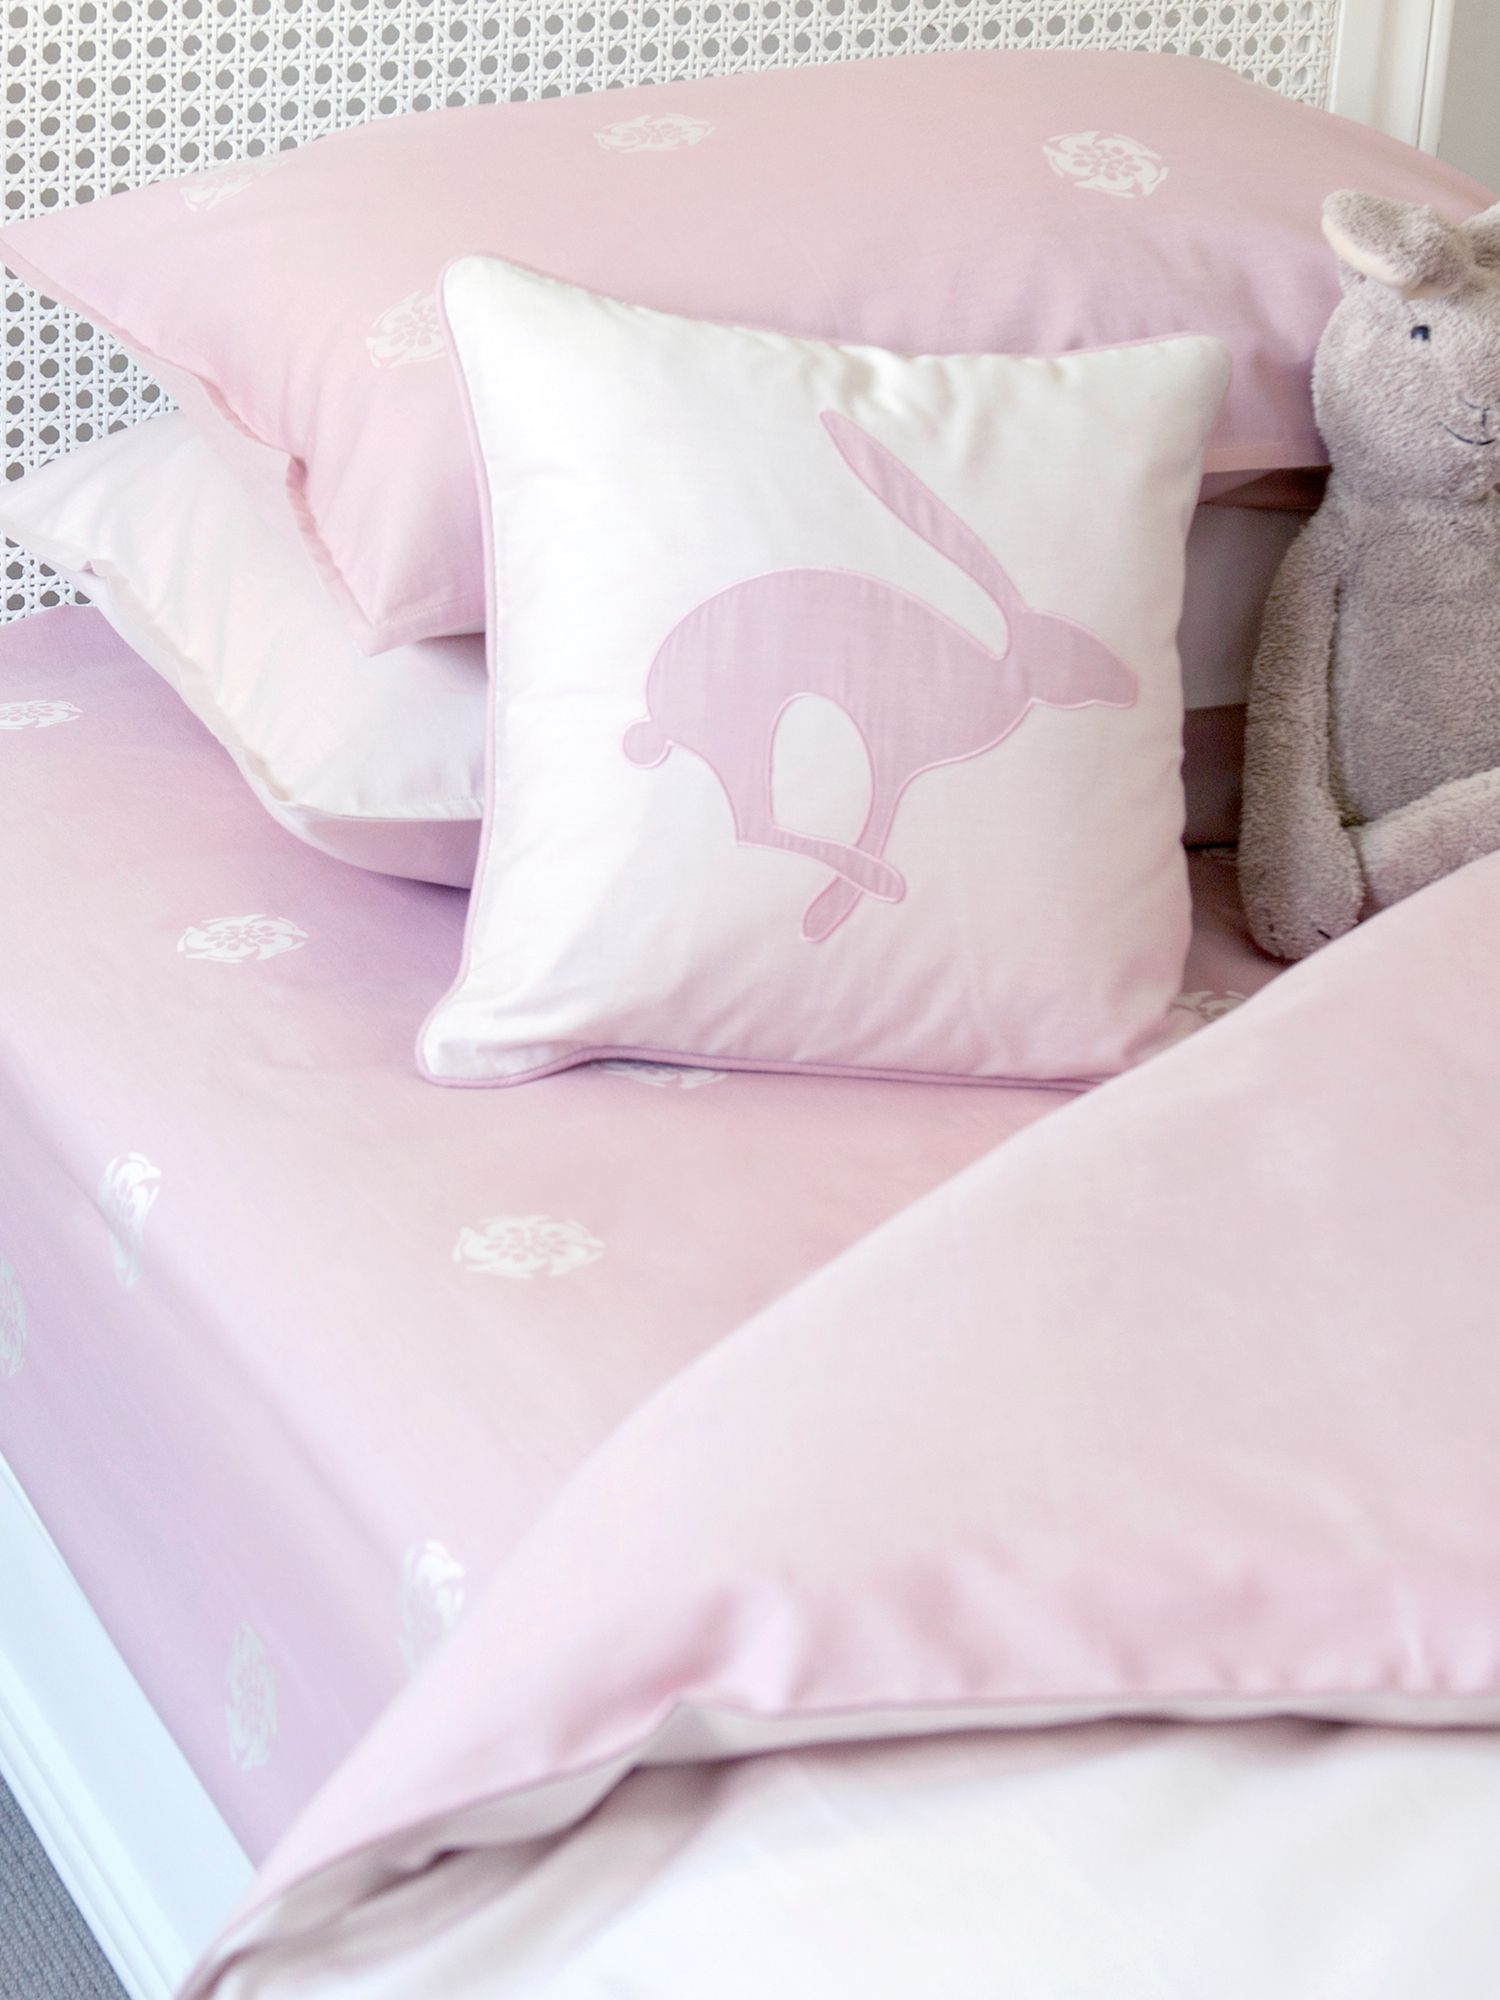 Harriet Hare Harriet Hare Hare Flower fitted sheet